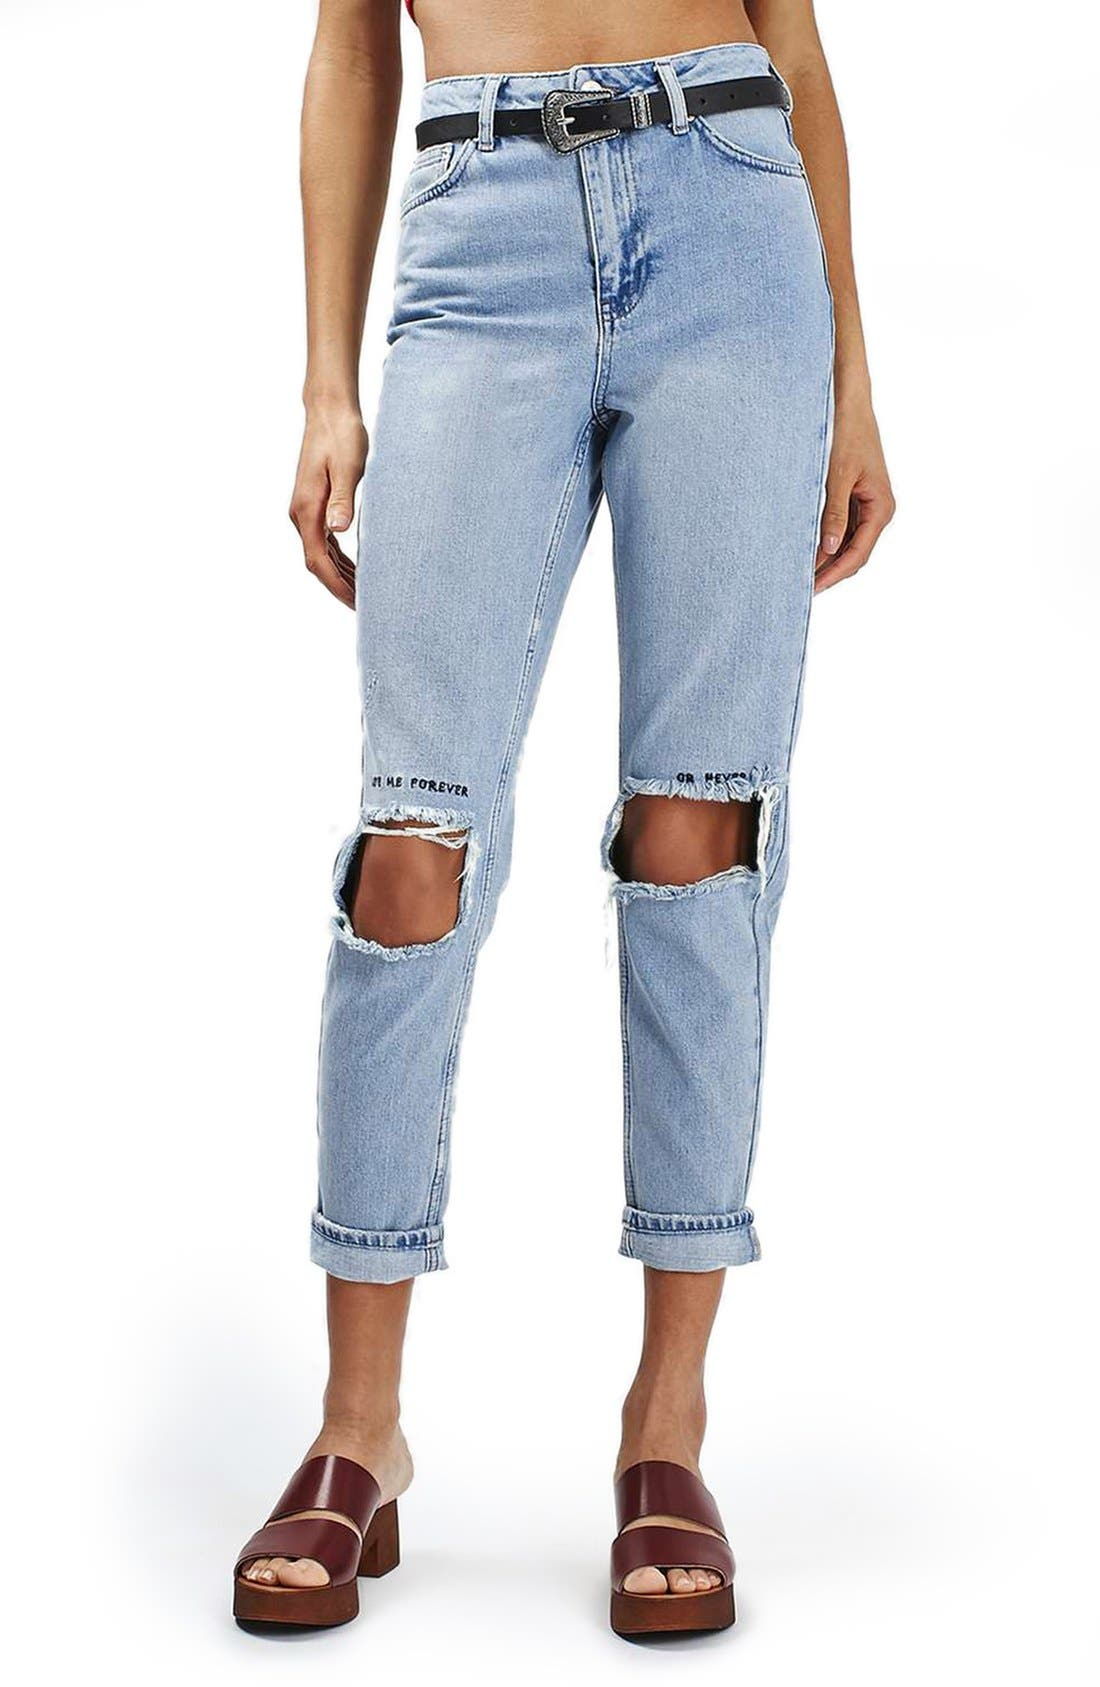 Alternate Image 1 Selected - Topshop Embroidered Ripped Mom Jeans